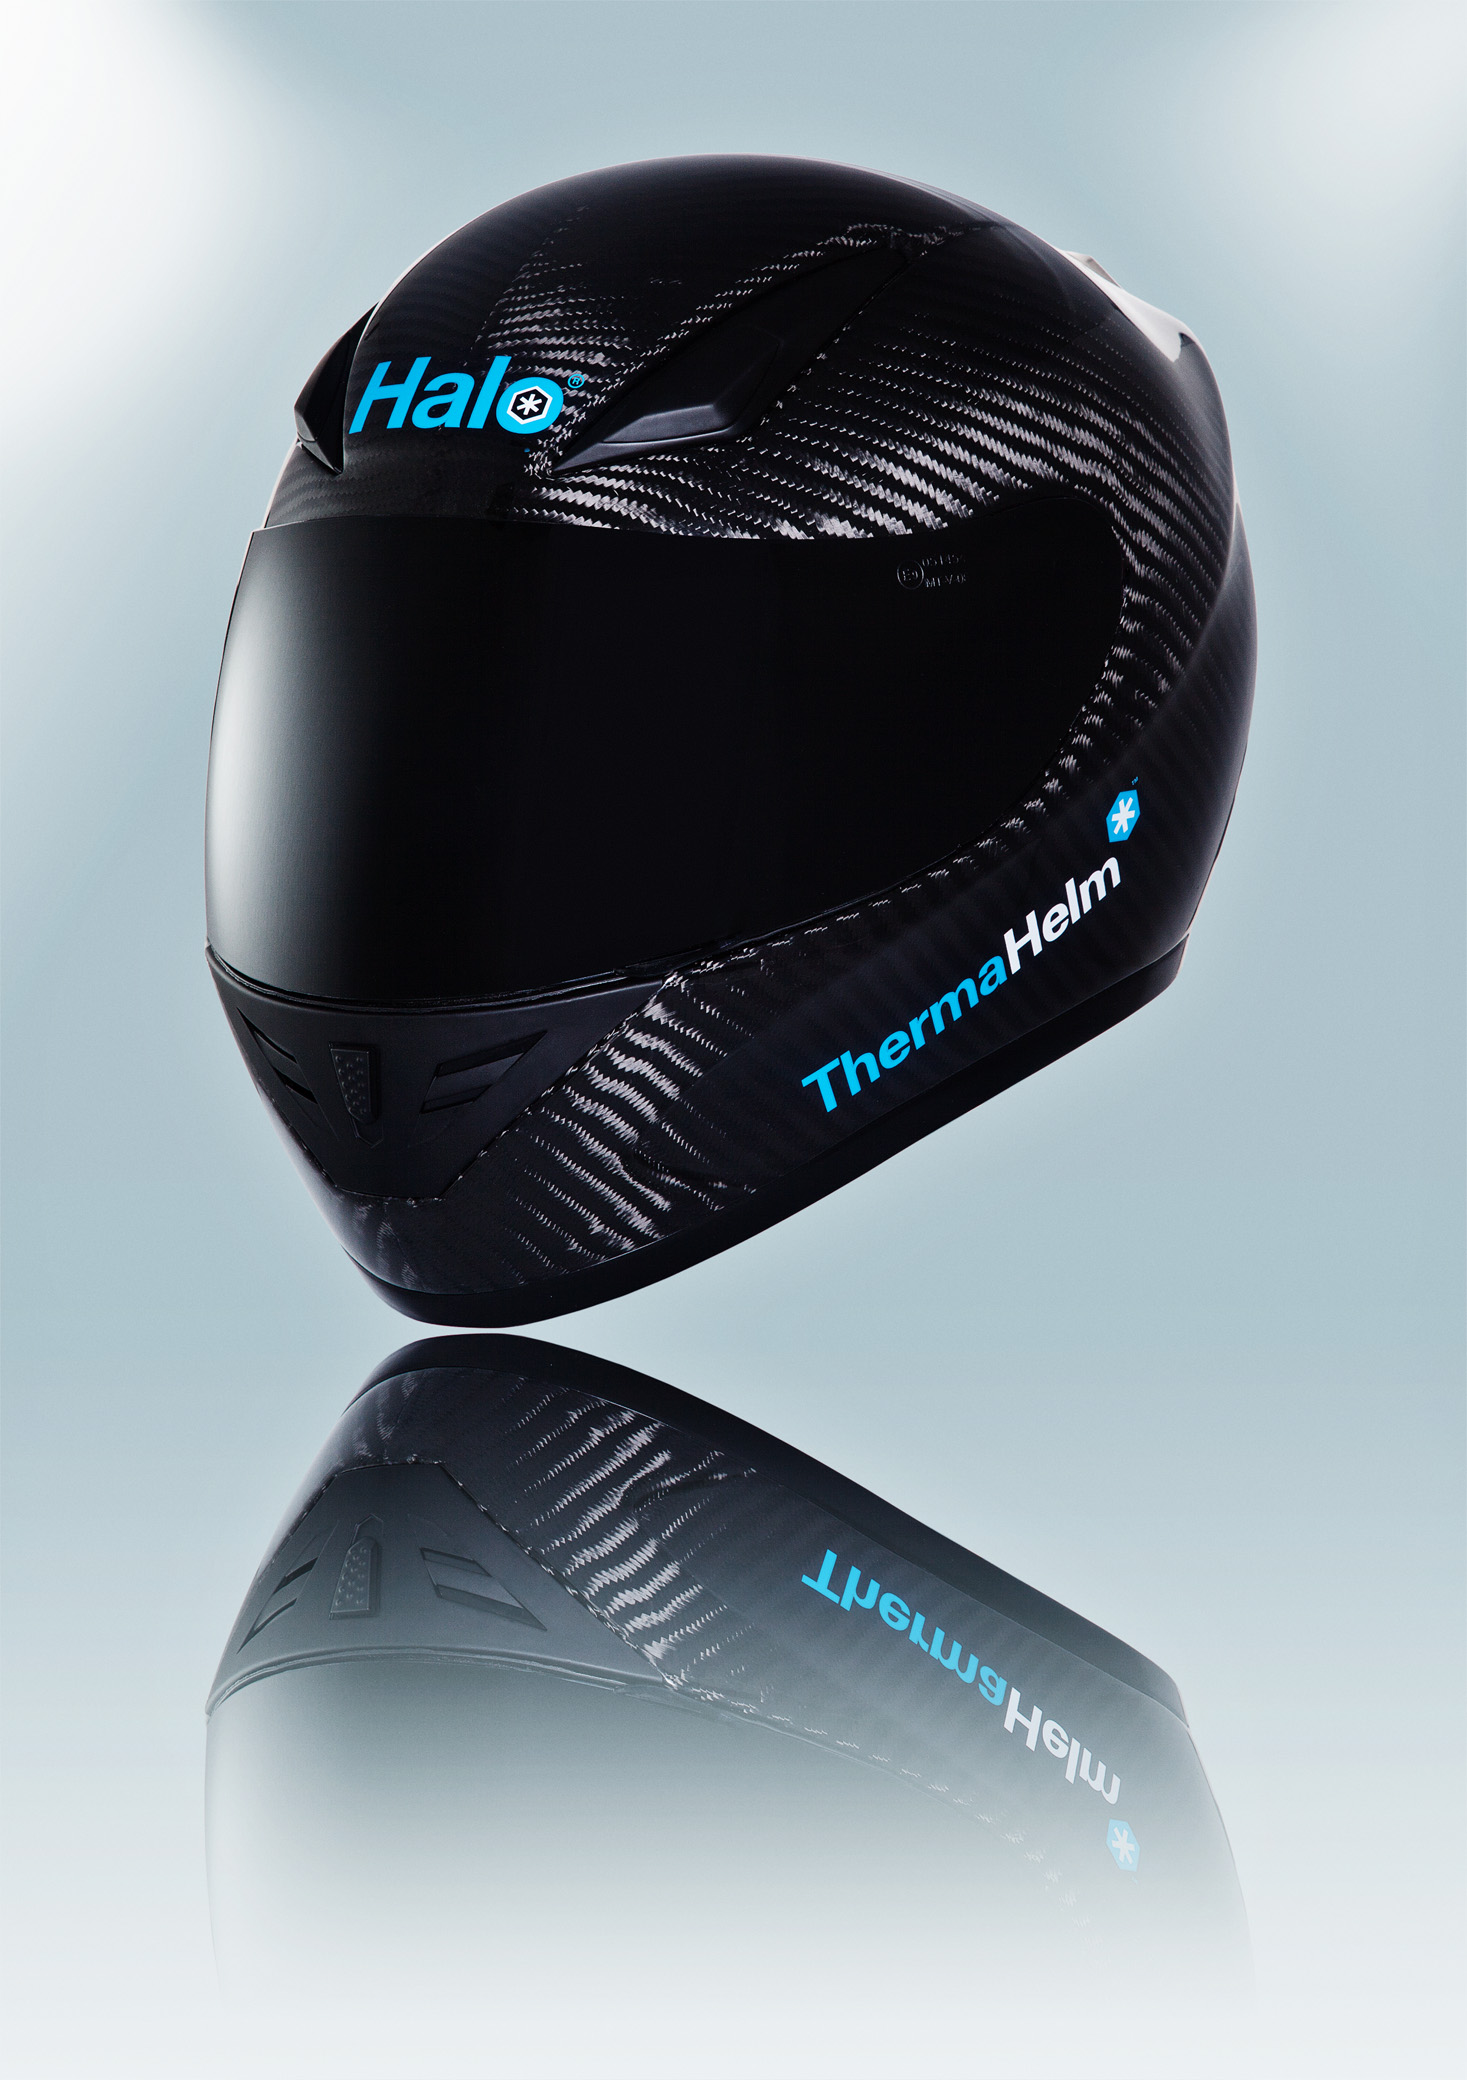 Product photography - carbon fibre motorcycle helmet shot in the studio